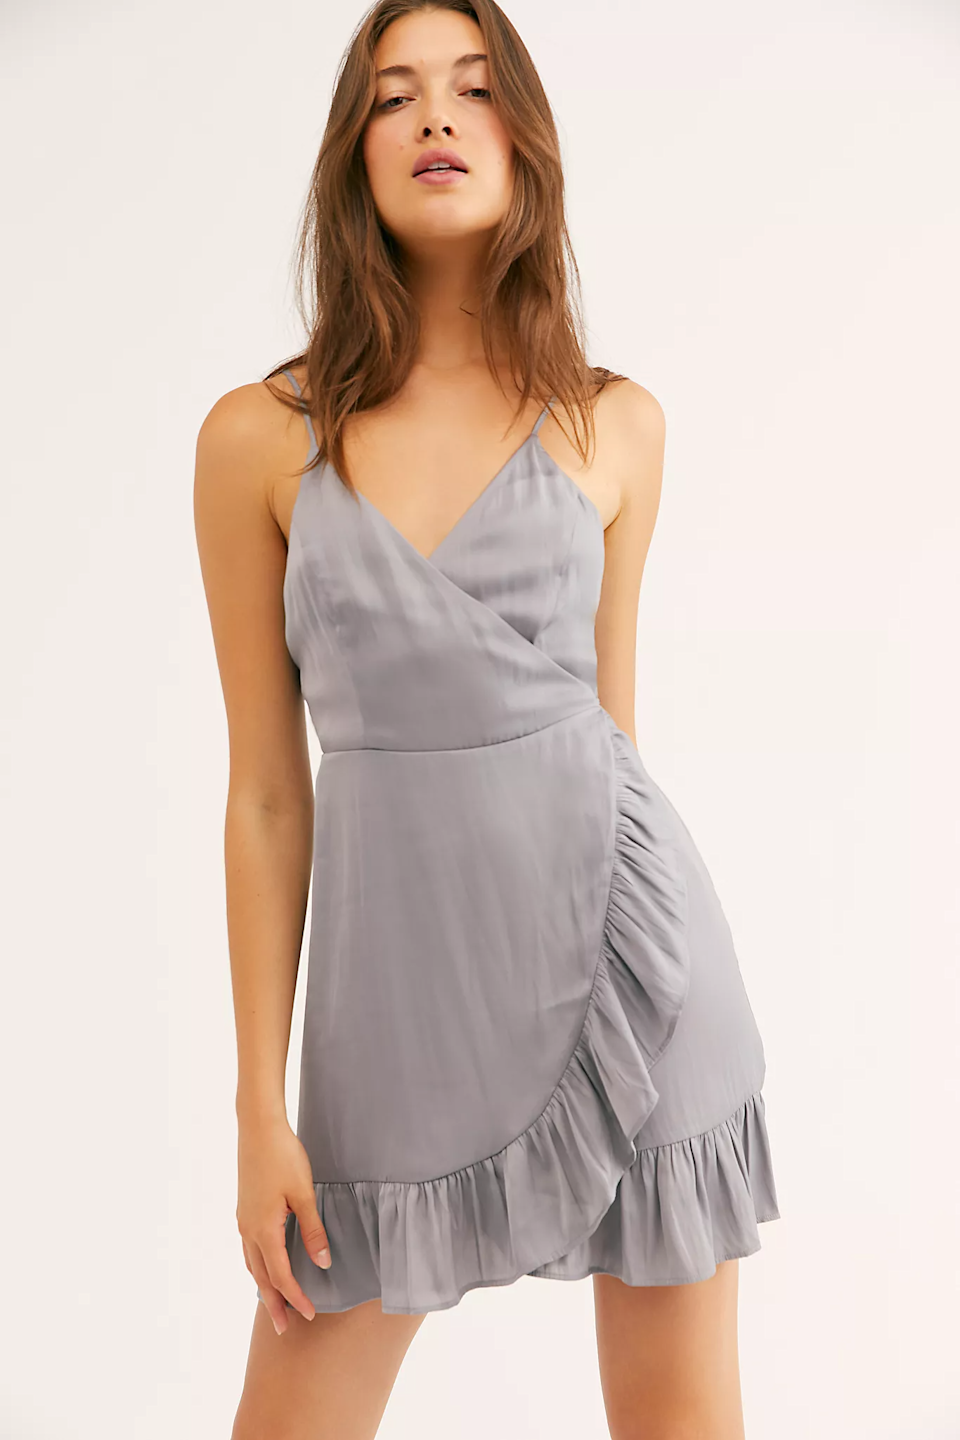 "<br><br><strong>Intimately</strong> All My Love Shine Wrap Slip, $, available at <a href=""https://go.skimresources.com/?id=30283X879131&url=https%3A%2F%2Fwww.freepeople.com%2Fshop%2Fall-my-love-shine-wrap-slip"" rel=""nofollow noopener"" target=""_blank"" data-ylk=""slk:Free People"" class=""link rapid-noclick-resp"">Free People</a>"